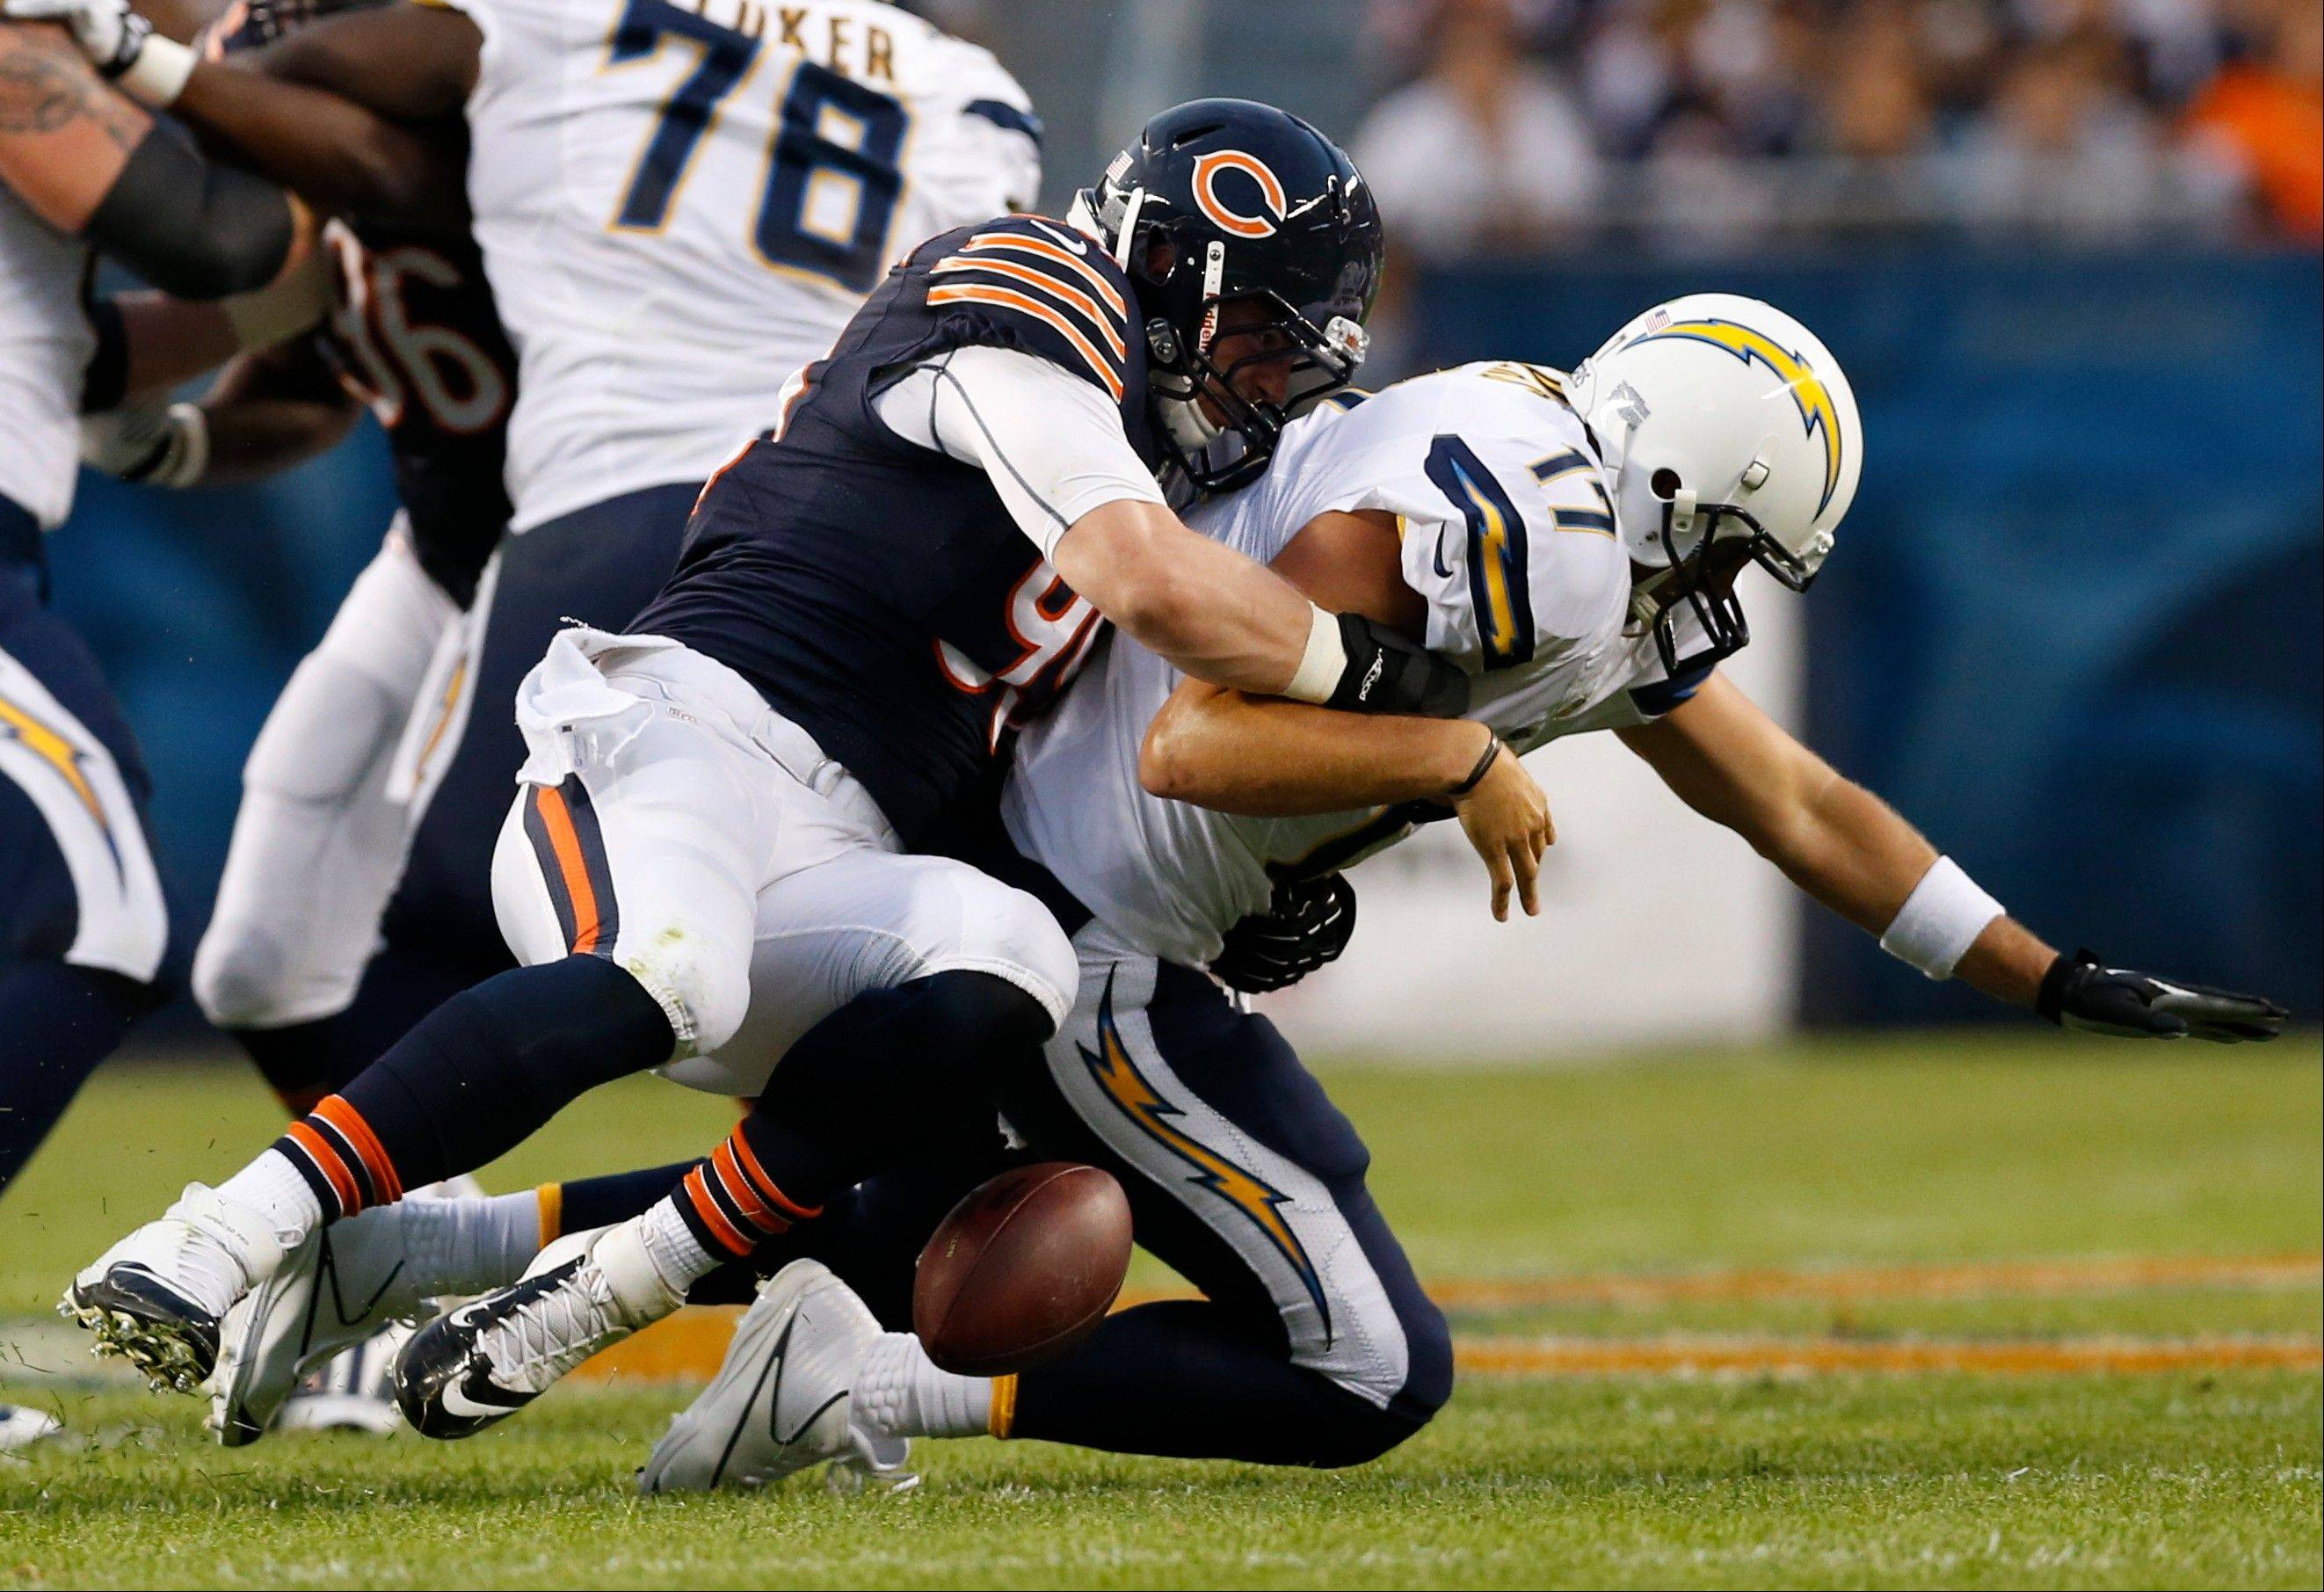 Chicago Bears defensive end Shea McClellin (99) sacks San Diego Chargers quarterback Philip Rivers (17) during the first half of the preseason NFL football game, Thursday, Aug. 15, 2013, in Chicago. Rivers loses the ball which was recovered by Bears safety Major Wright on the play.